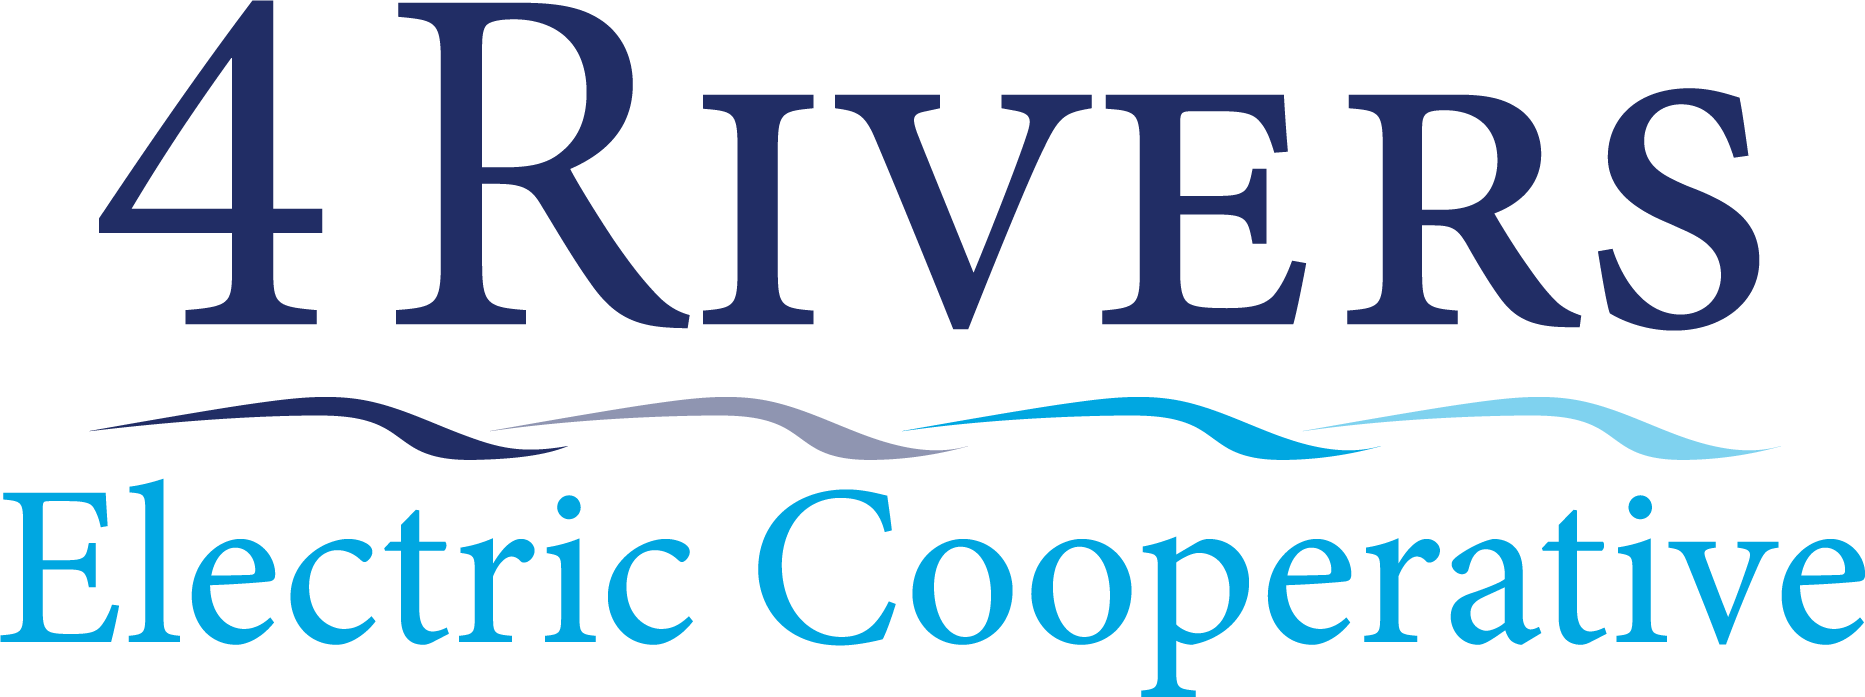 4 Rivers Electric Cooperative, Inc.